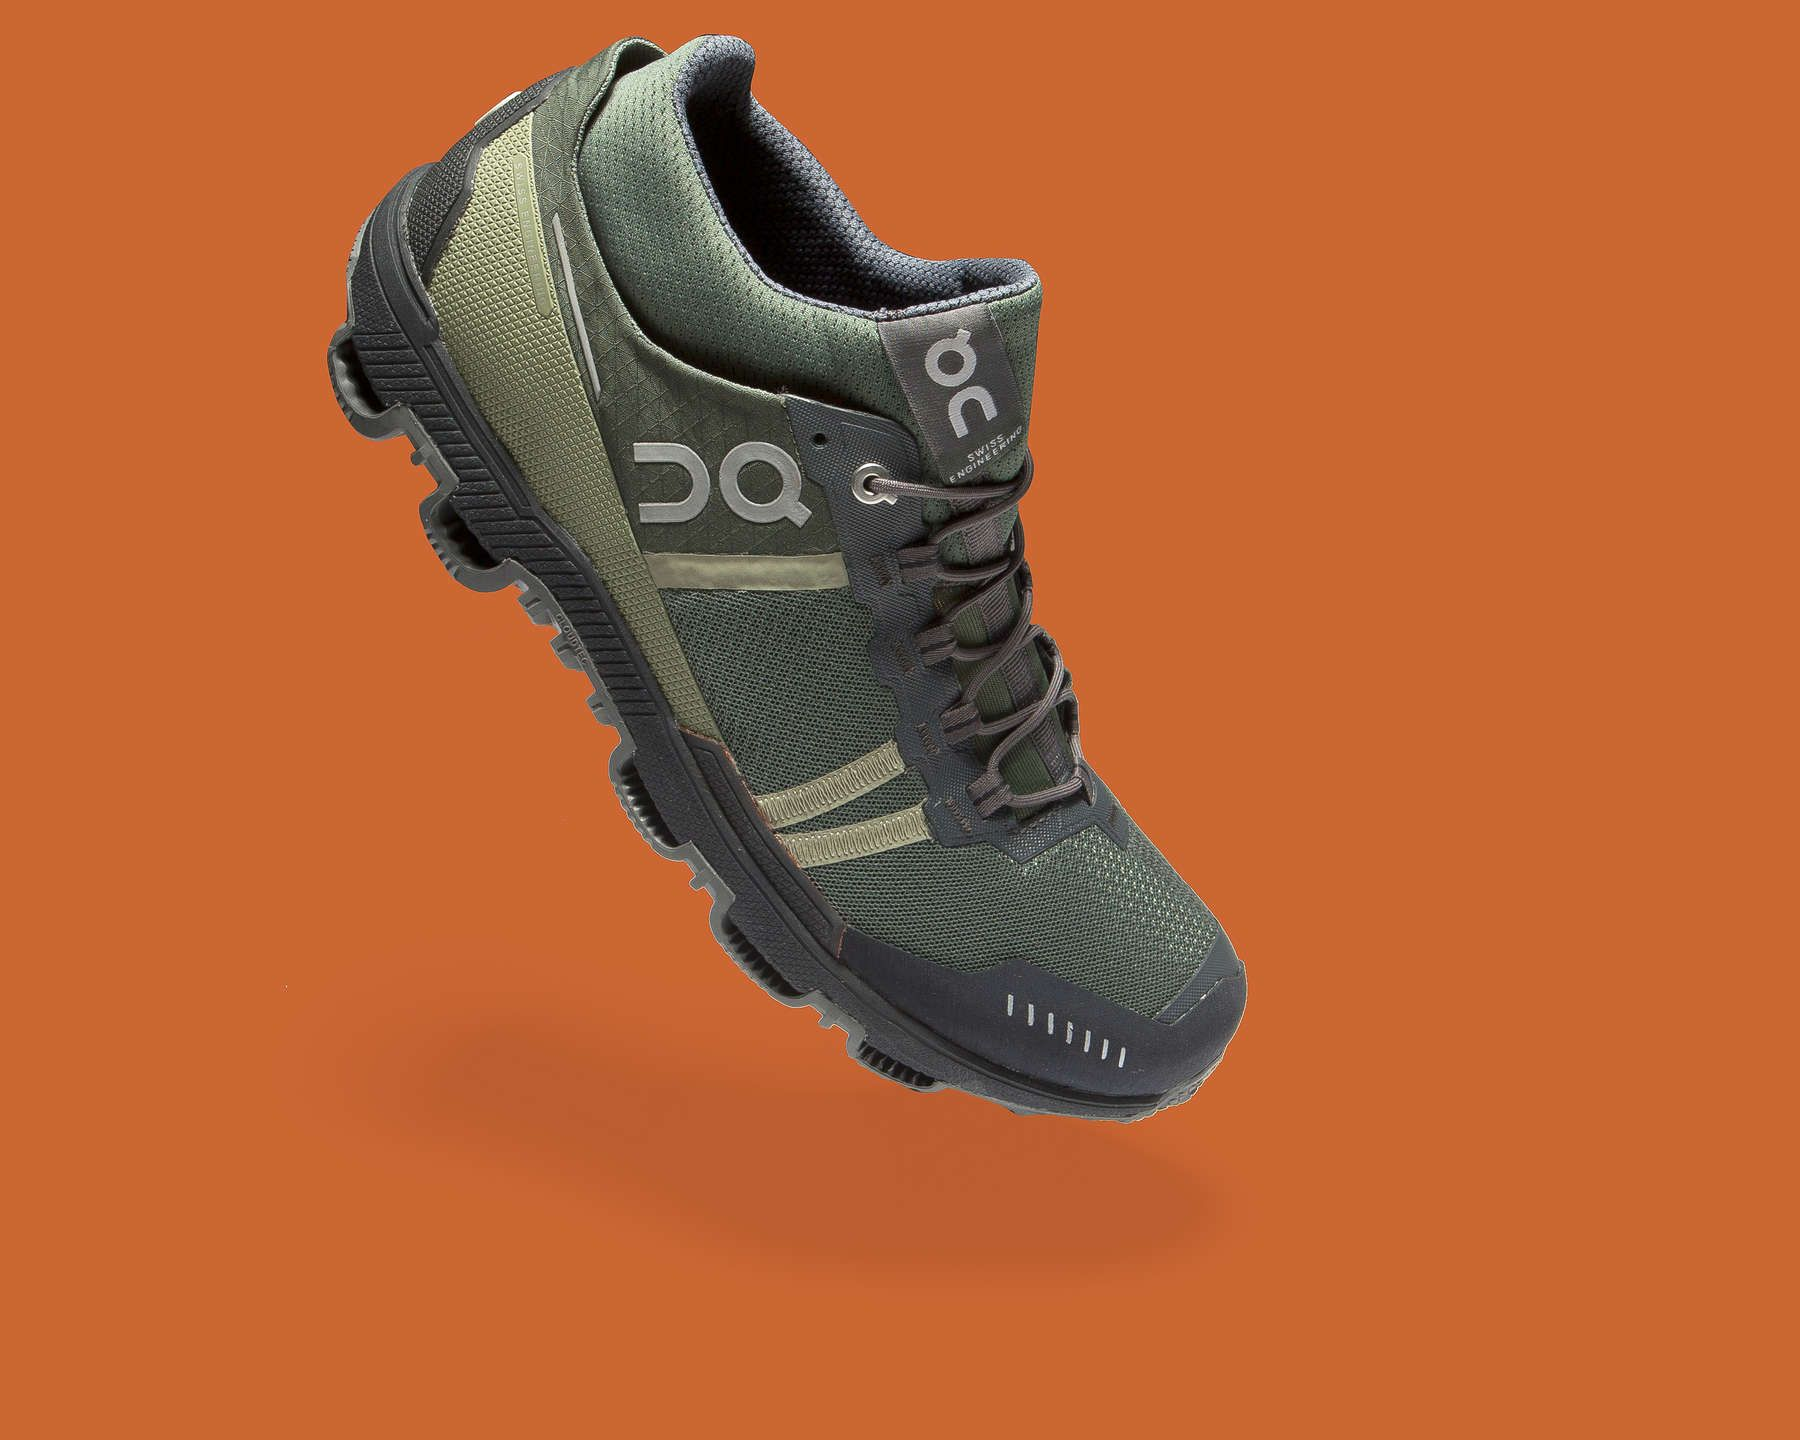 Shoes Mountains Lightweight To With Reach Running Engineered Trail rdhtQs